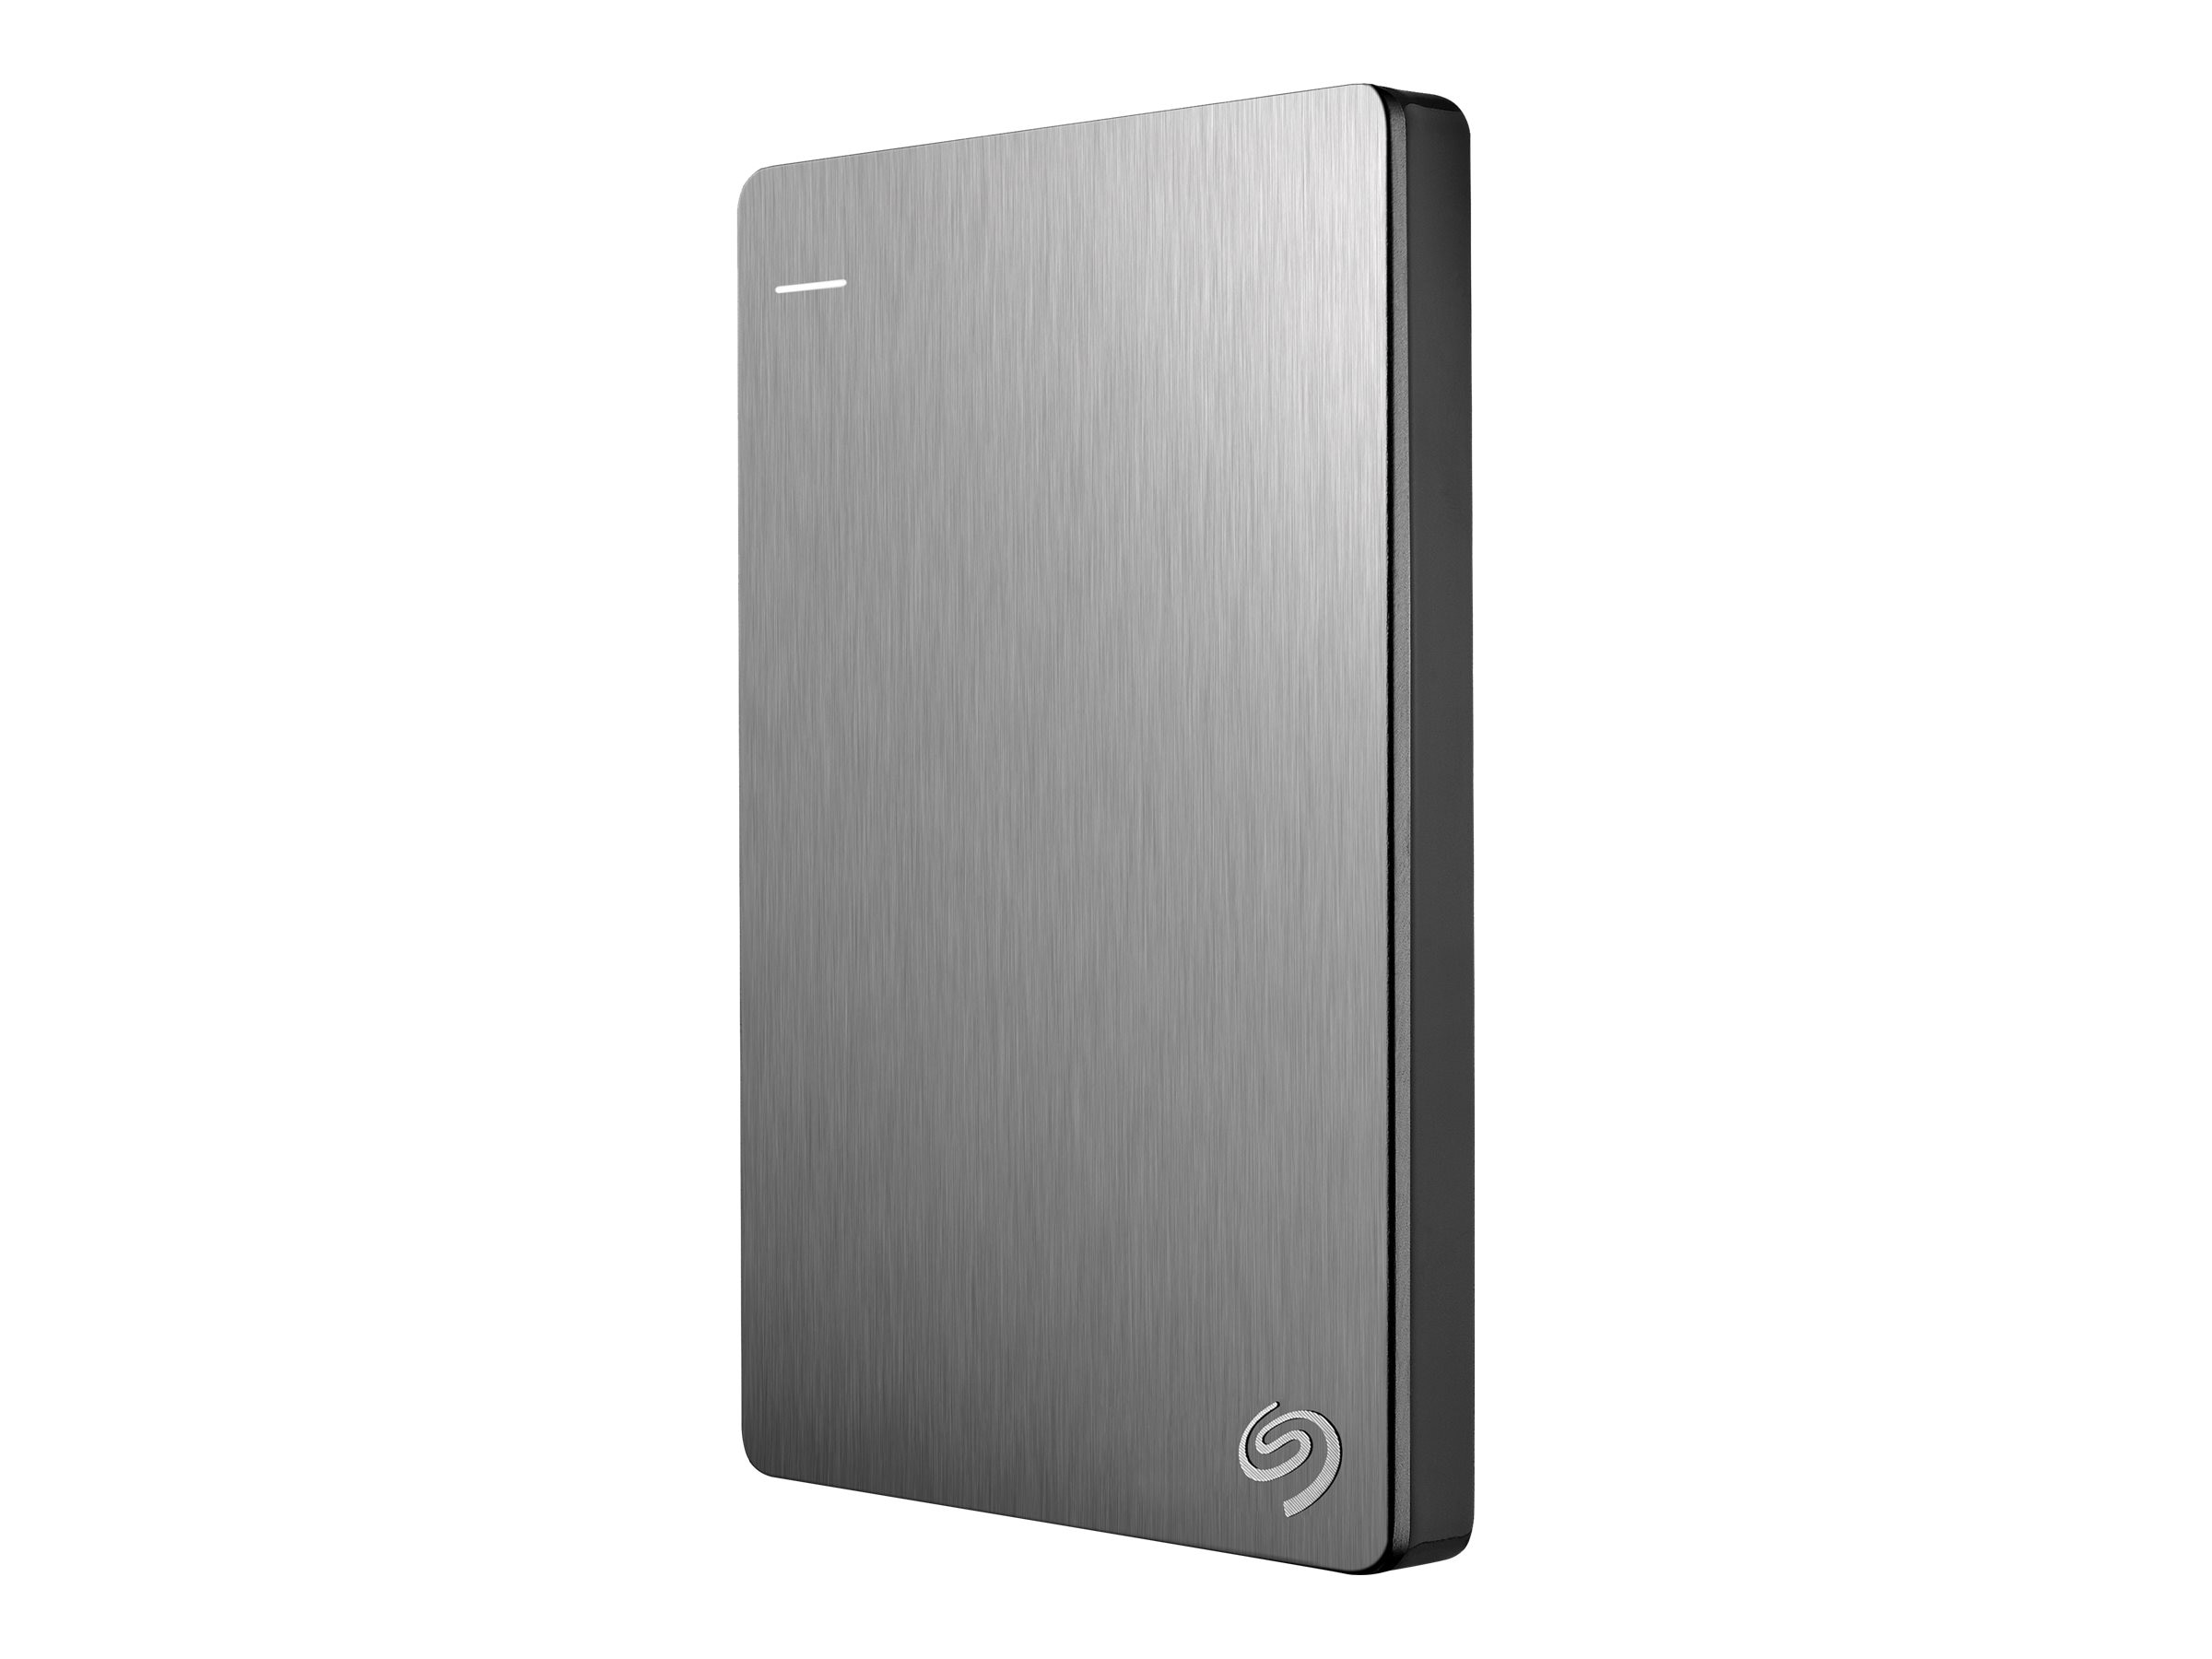 Seagate 2TB Backup Plus USB 3.0 Portable Hard Drive - Grey, STDR2000101, 16479562, Hard Drives - External